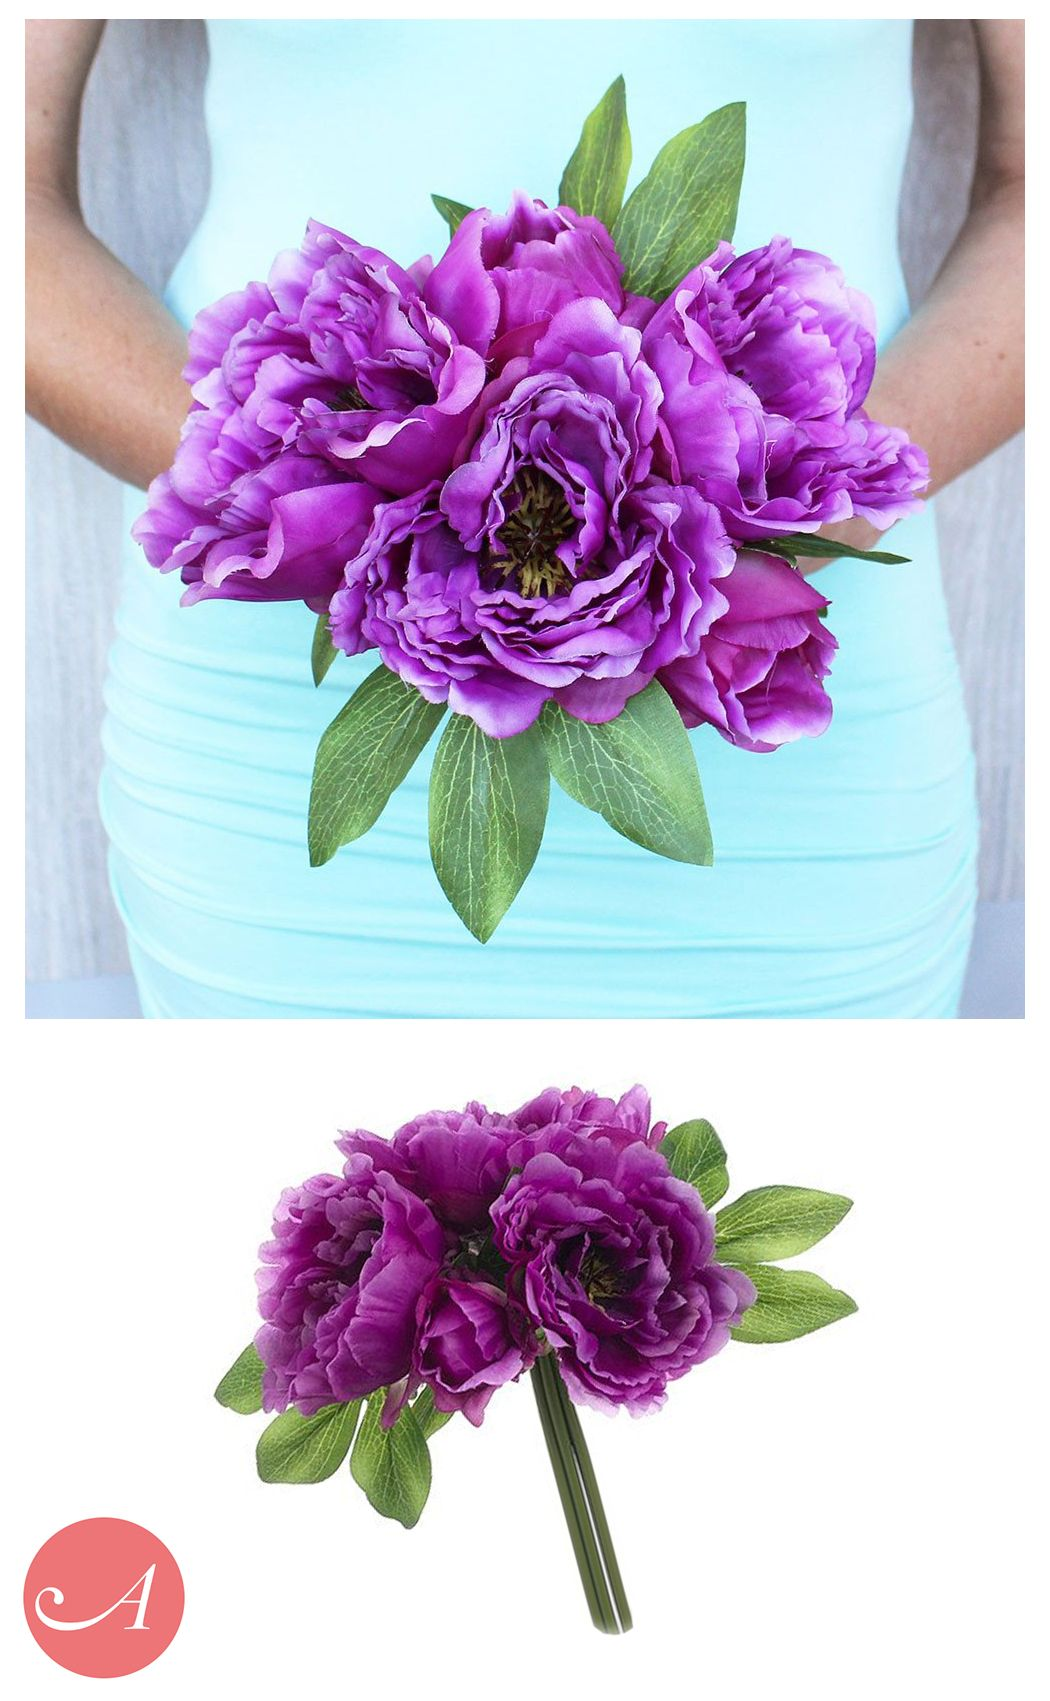 Bouquets under 25 at afloral pre made silk flower bouquets your source for beautiful inexpensive artificial wedding bouquets online shop afloral for silk weddings flowers the allergen free hassle free and izmirmasajfo